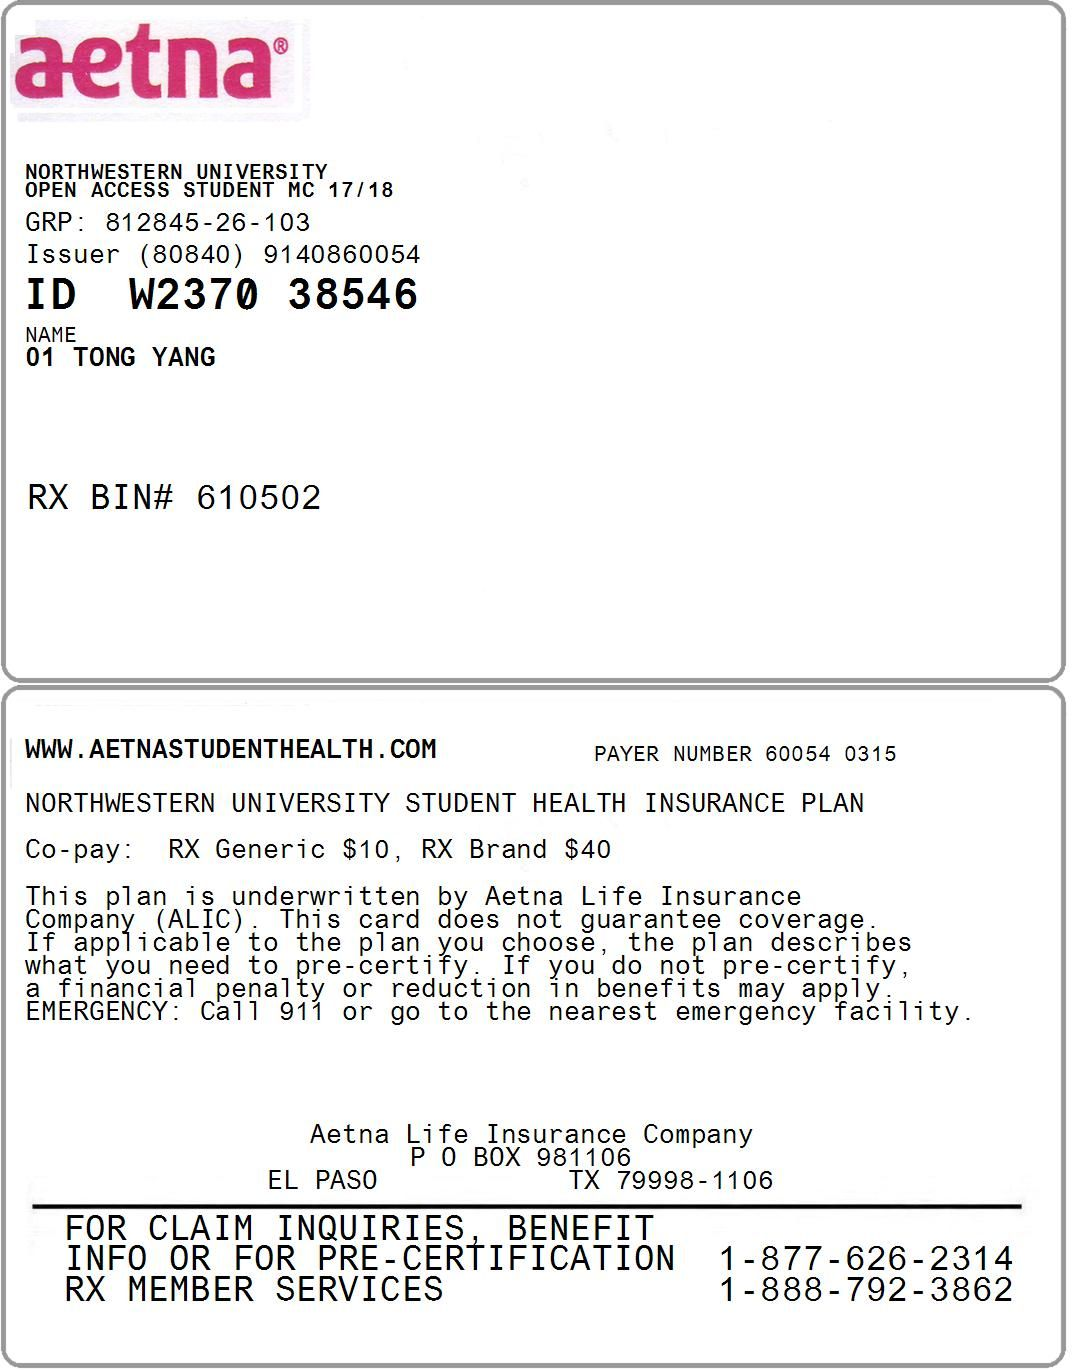 Id Card Students Health Health Insurance Plans Student Health